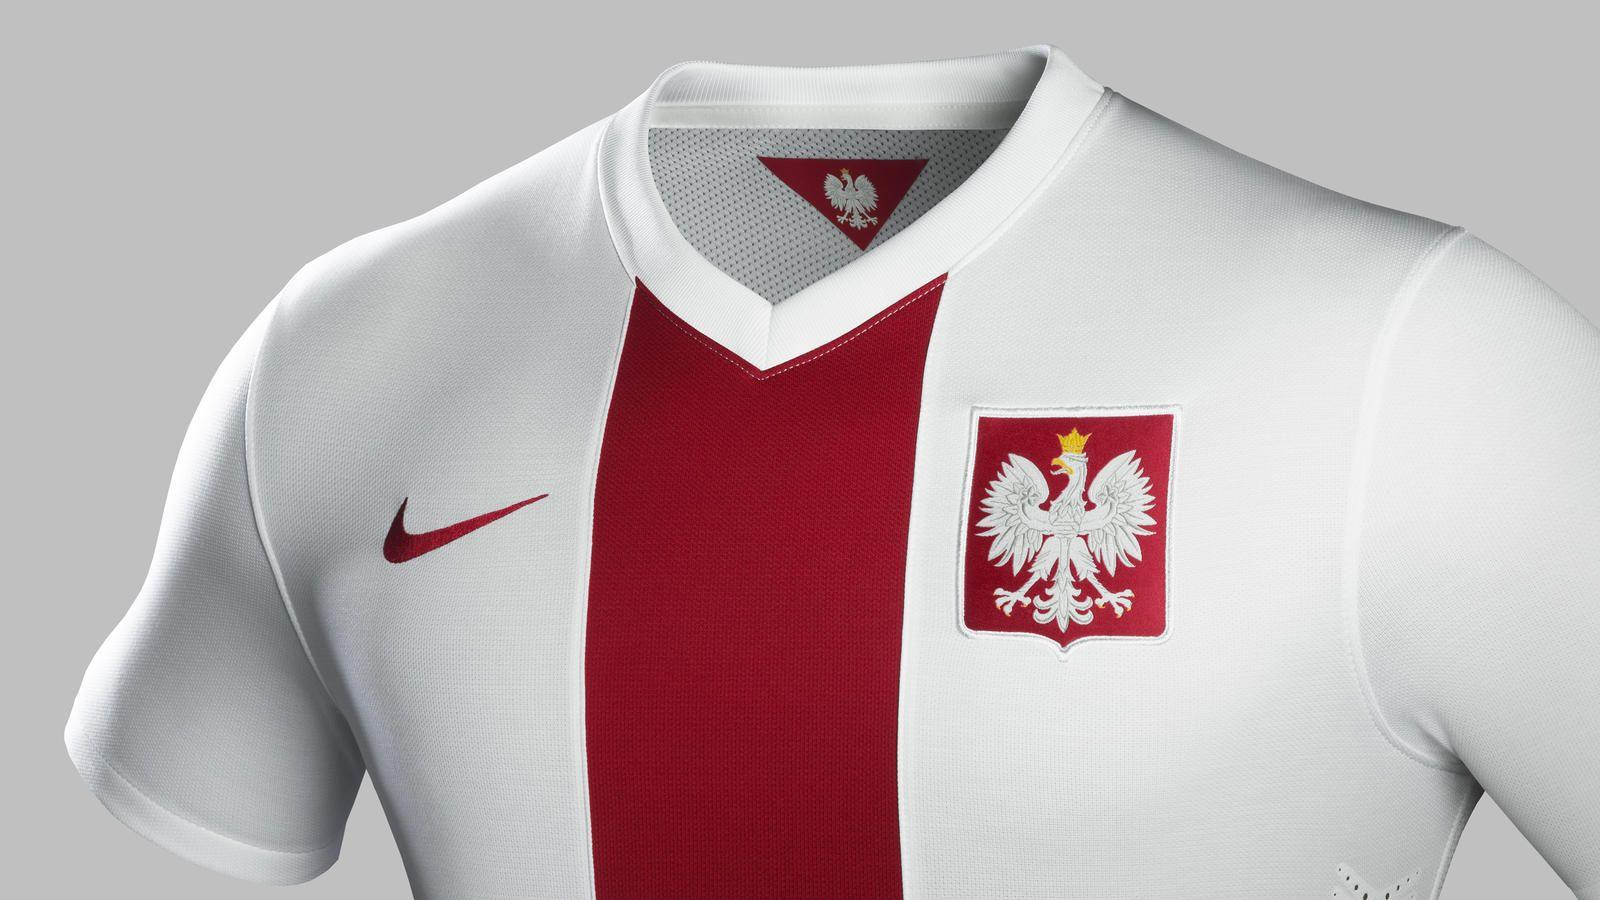 Poland Unveils New National Team Kit with Nike